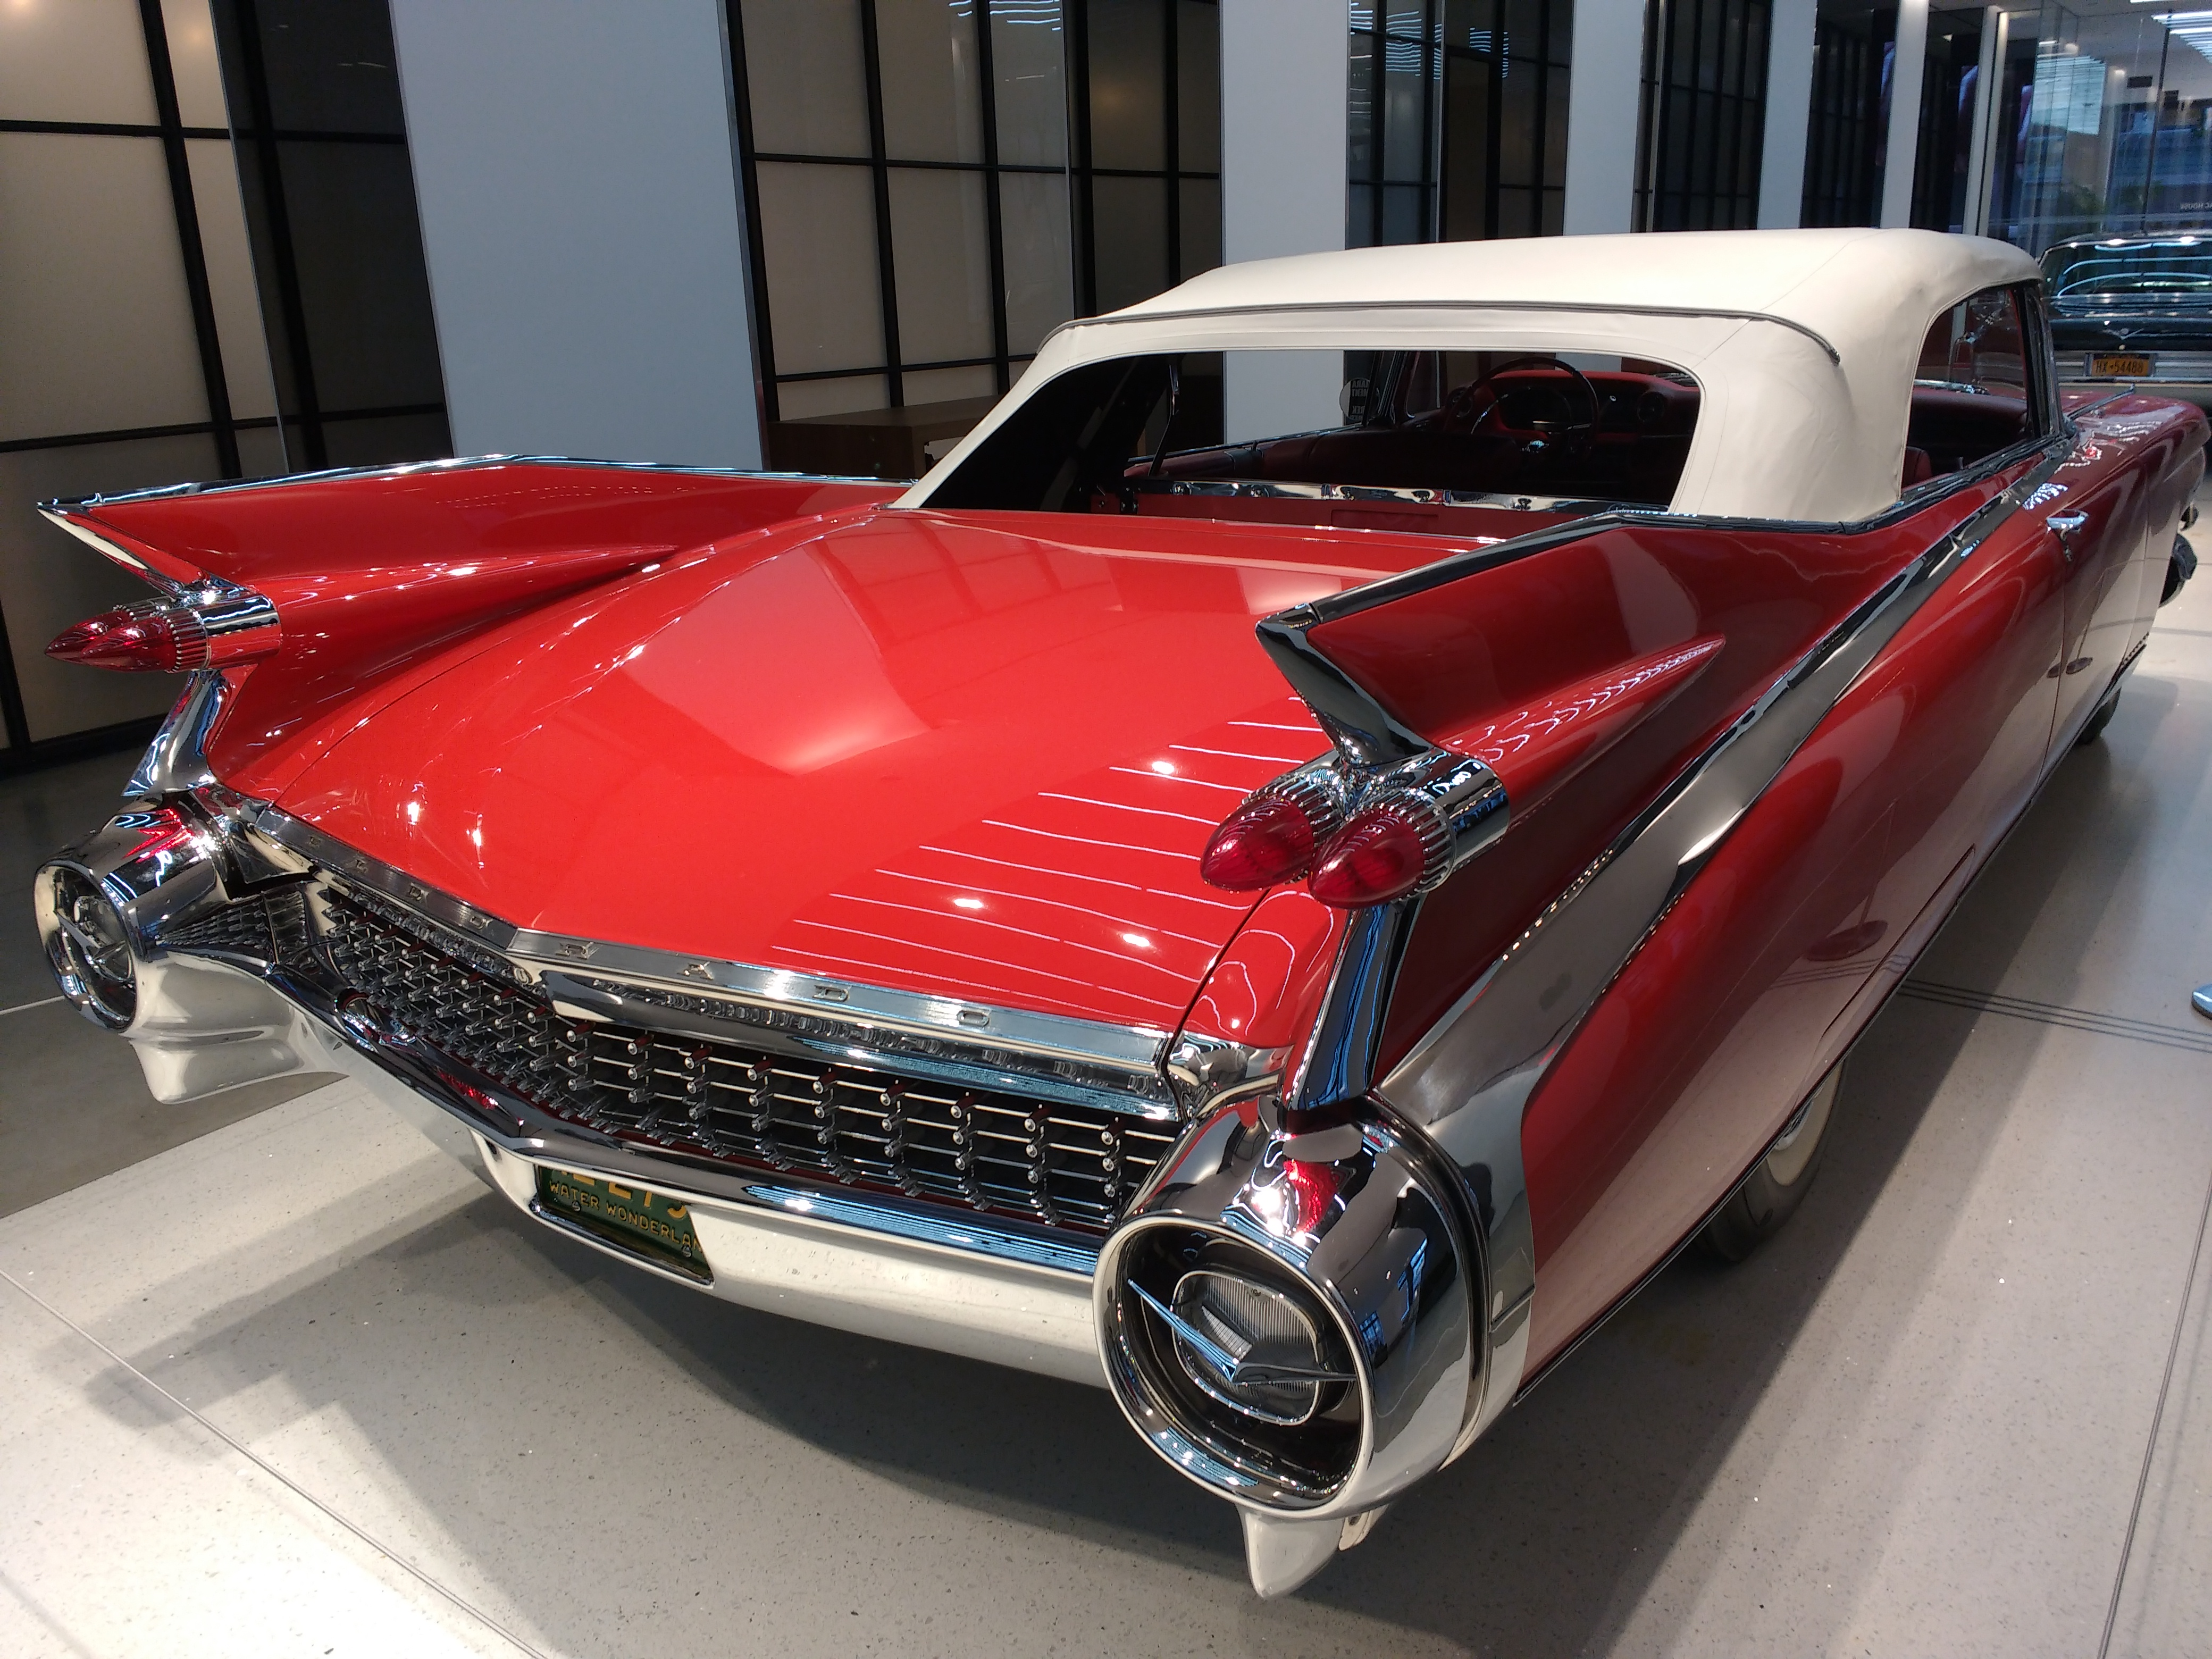 """Say """"tailfins"""", and most will conjure up an image of the '59 Cadillac"""